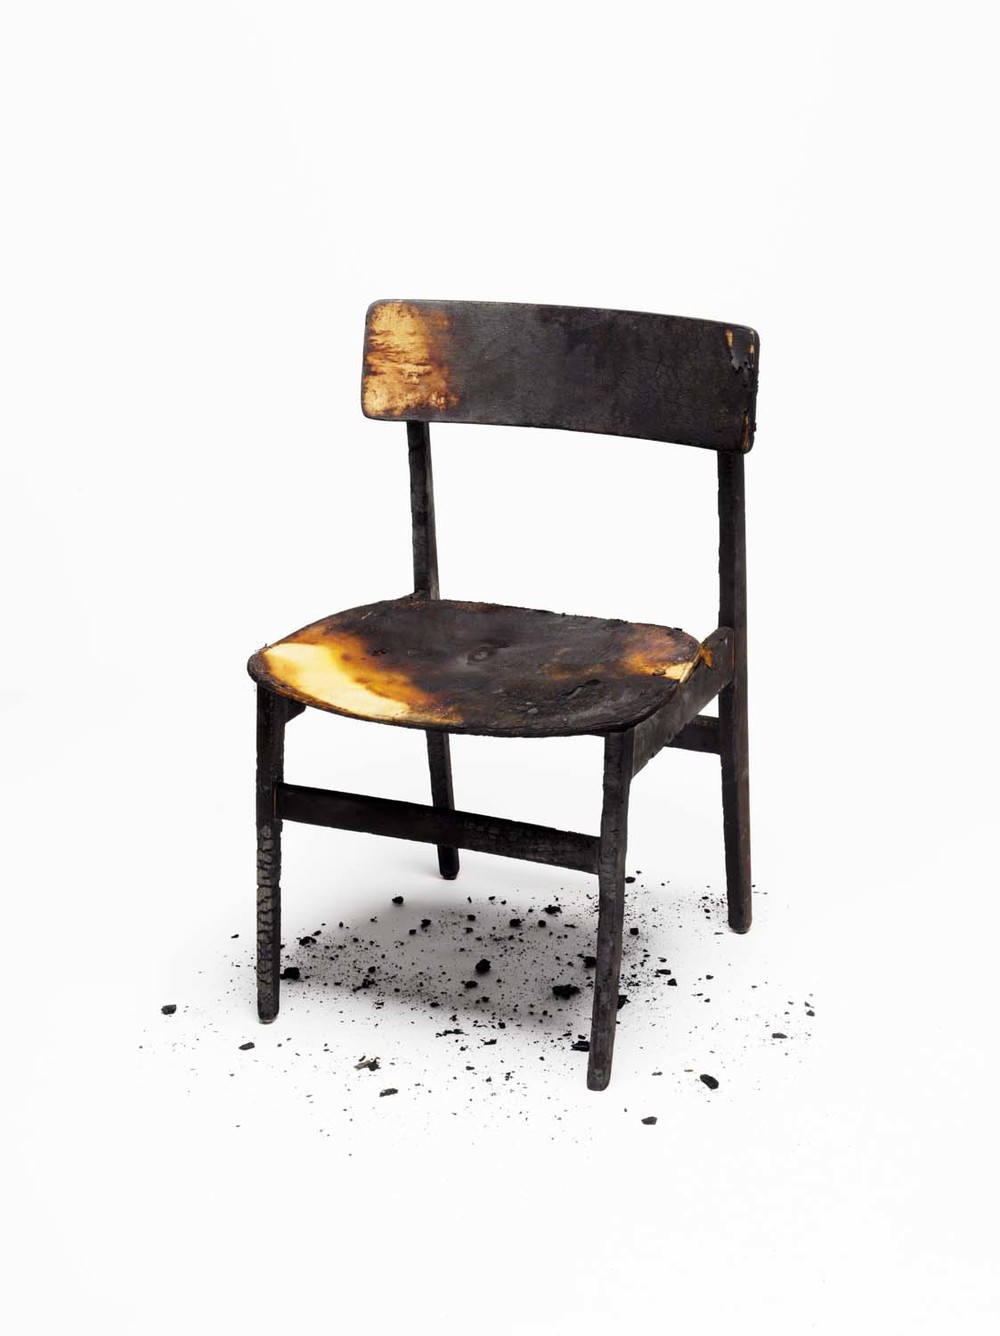 Burnt Chair